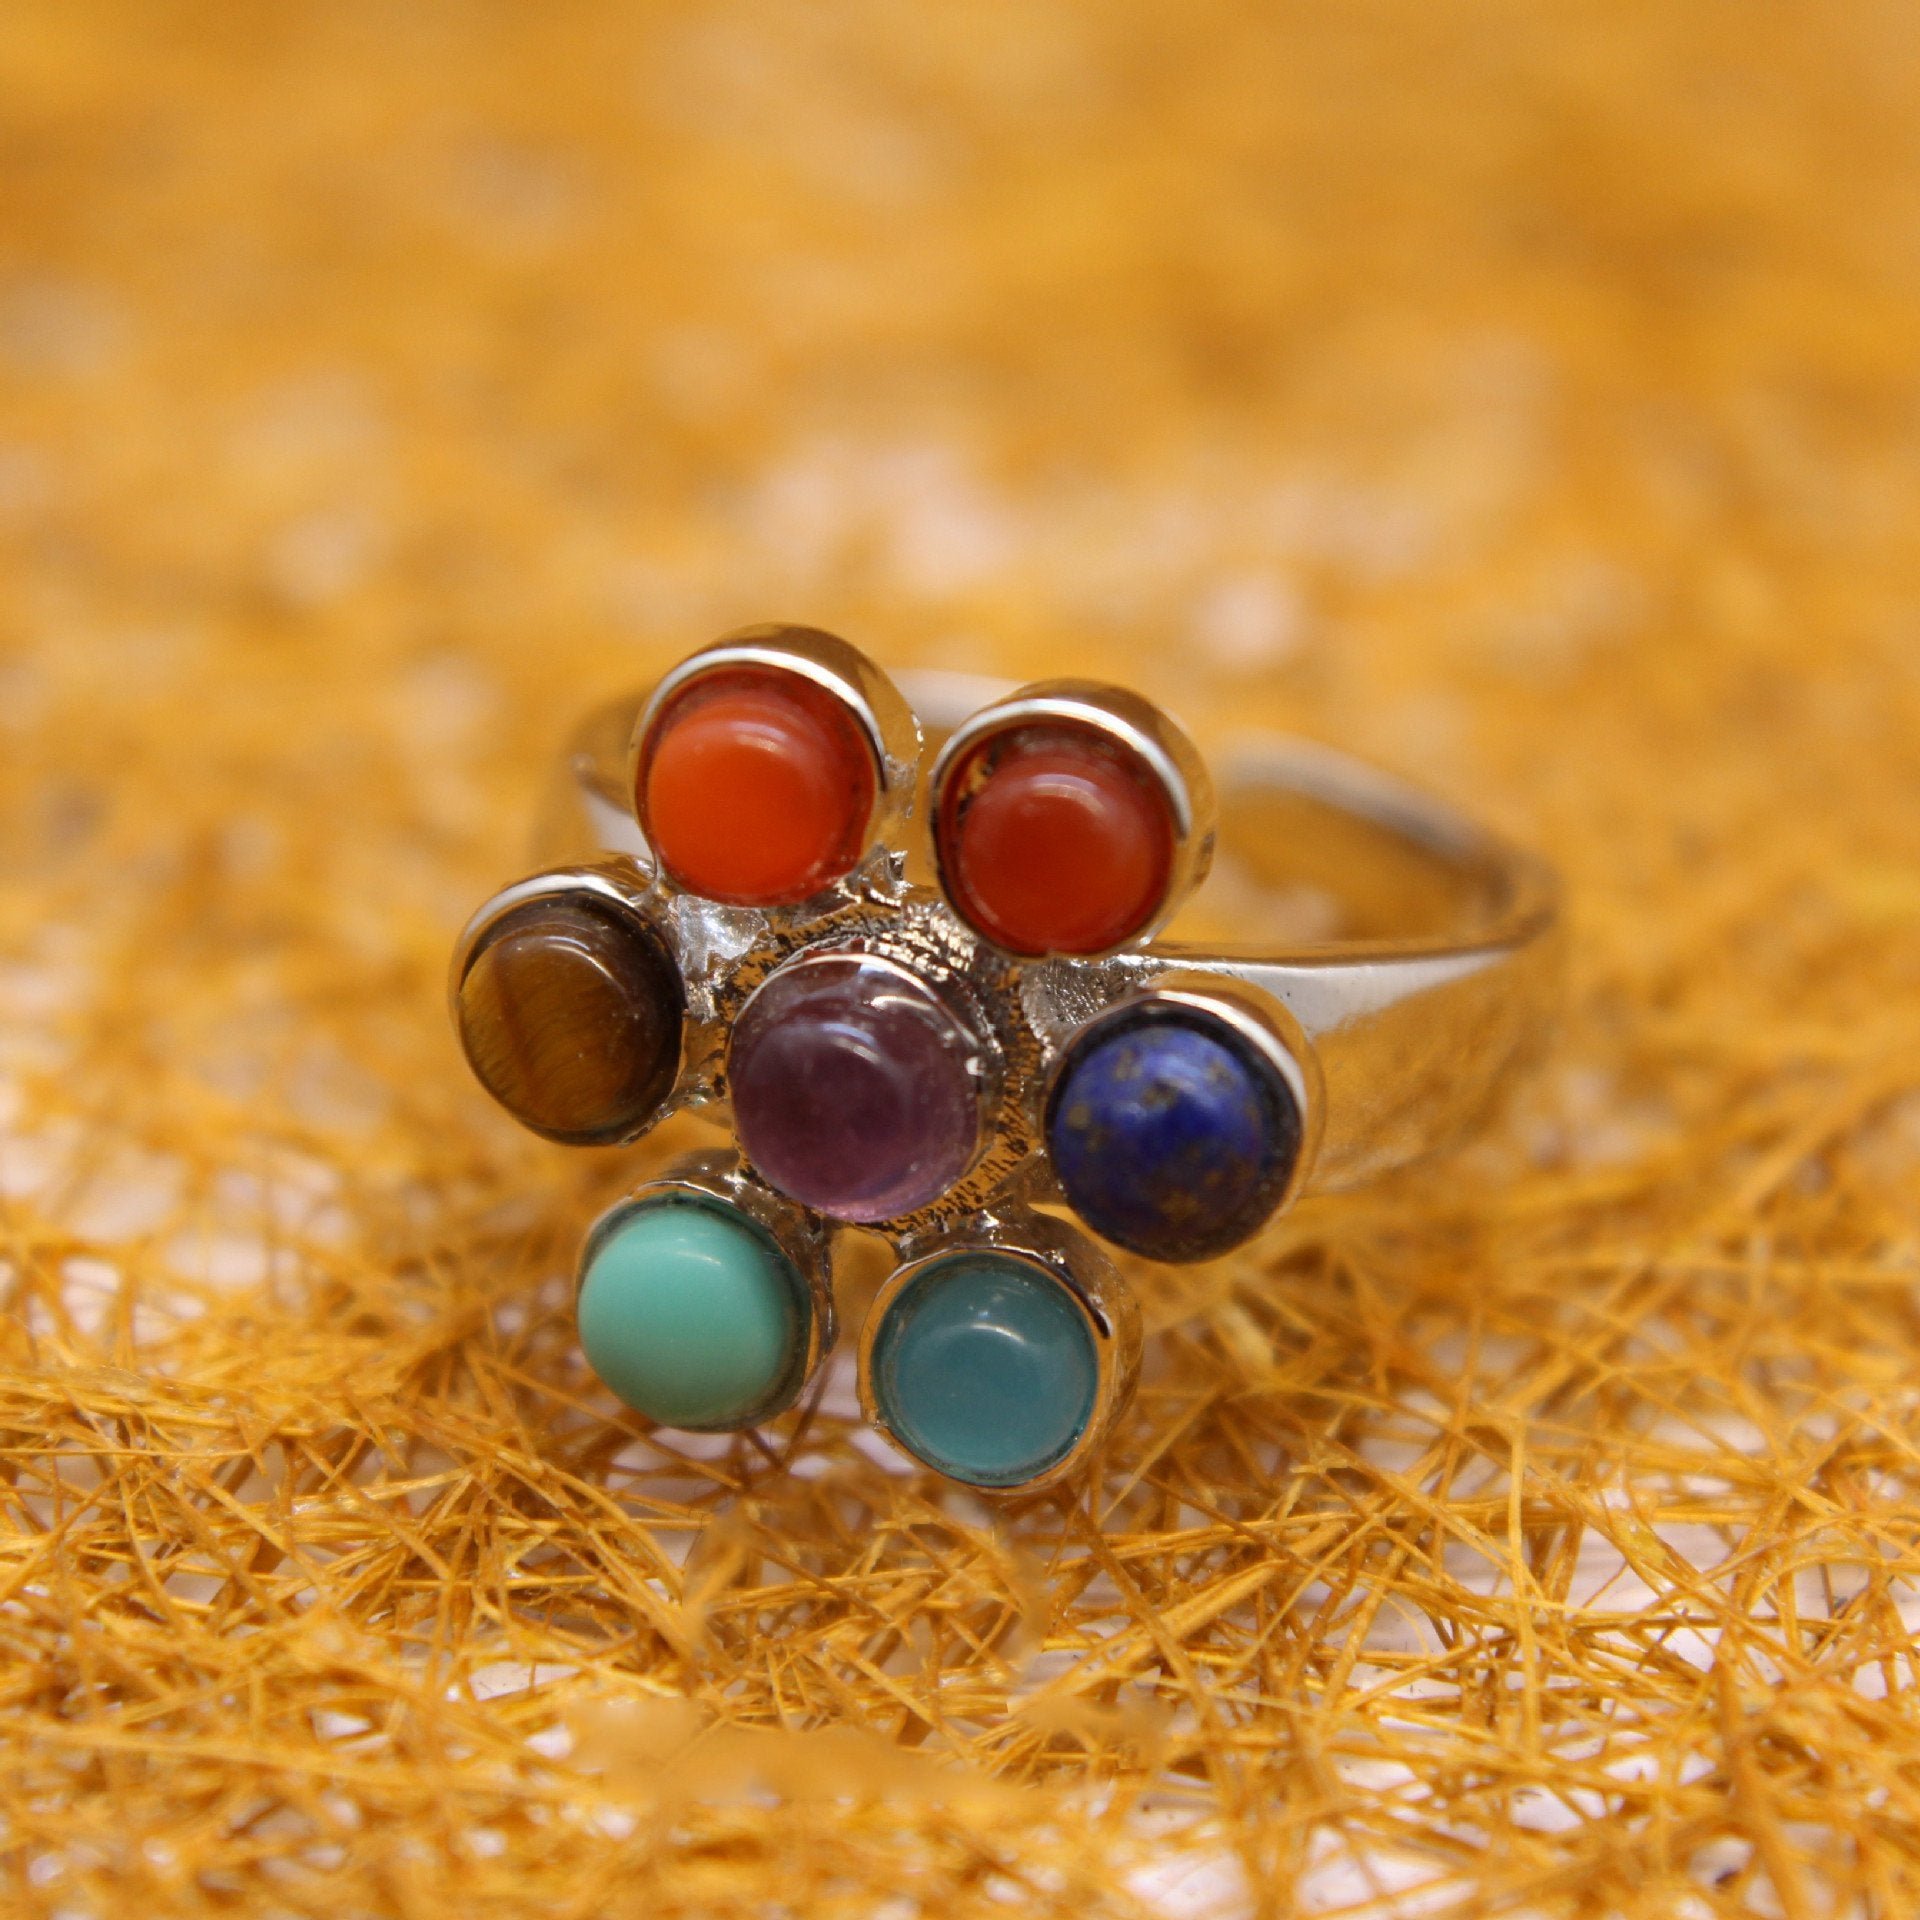 The Chakra Enlightenment Ring